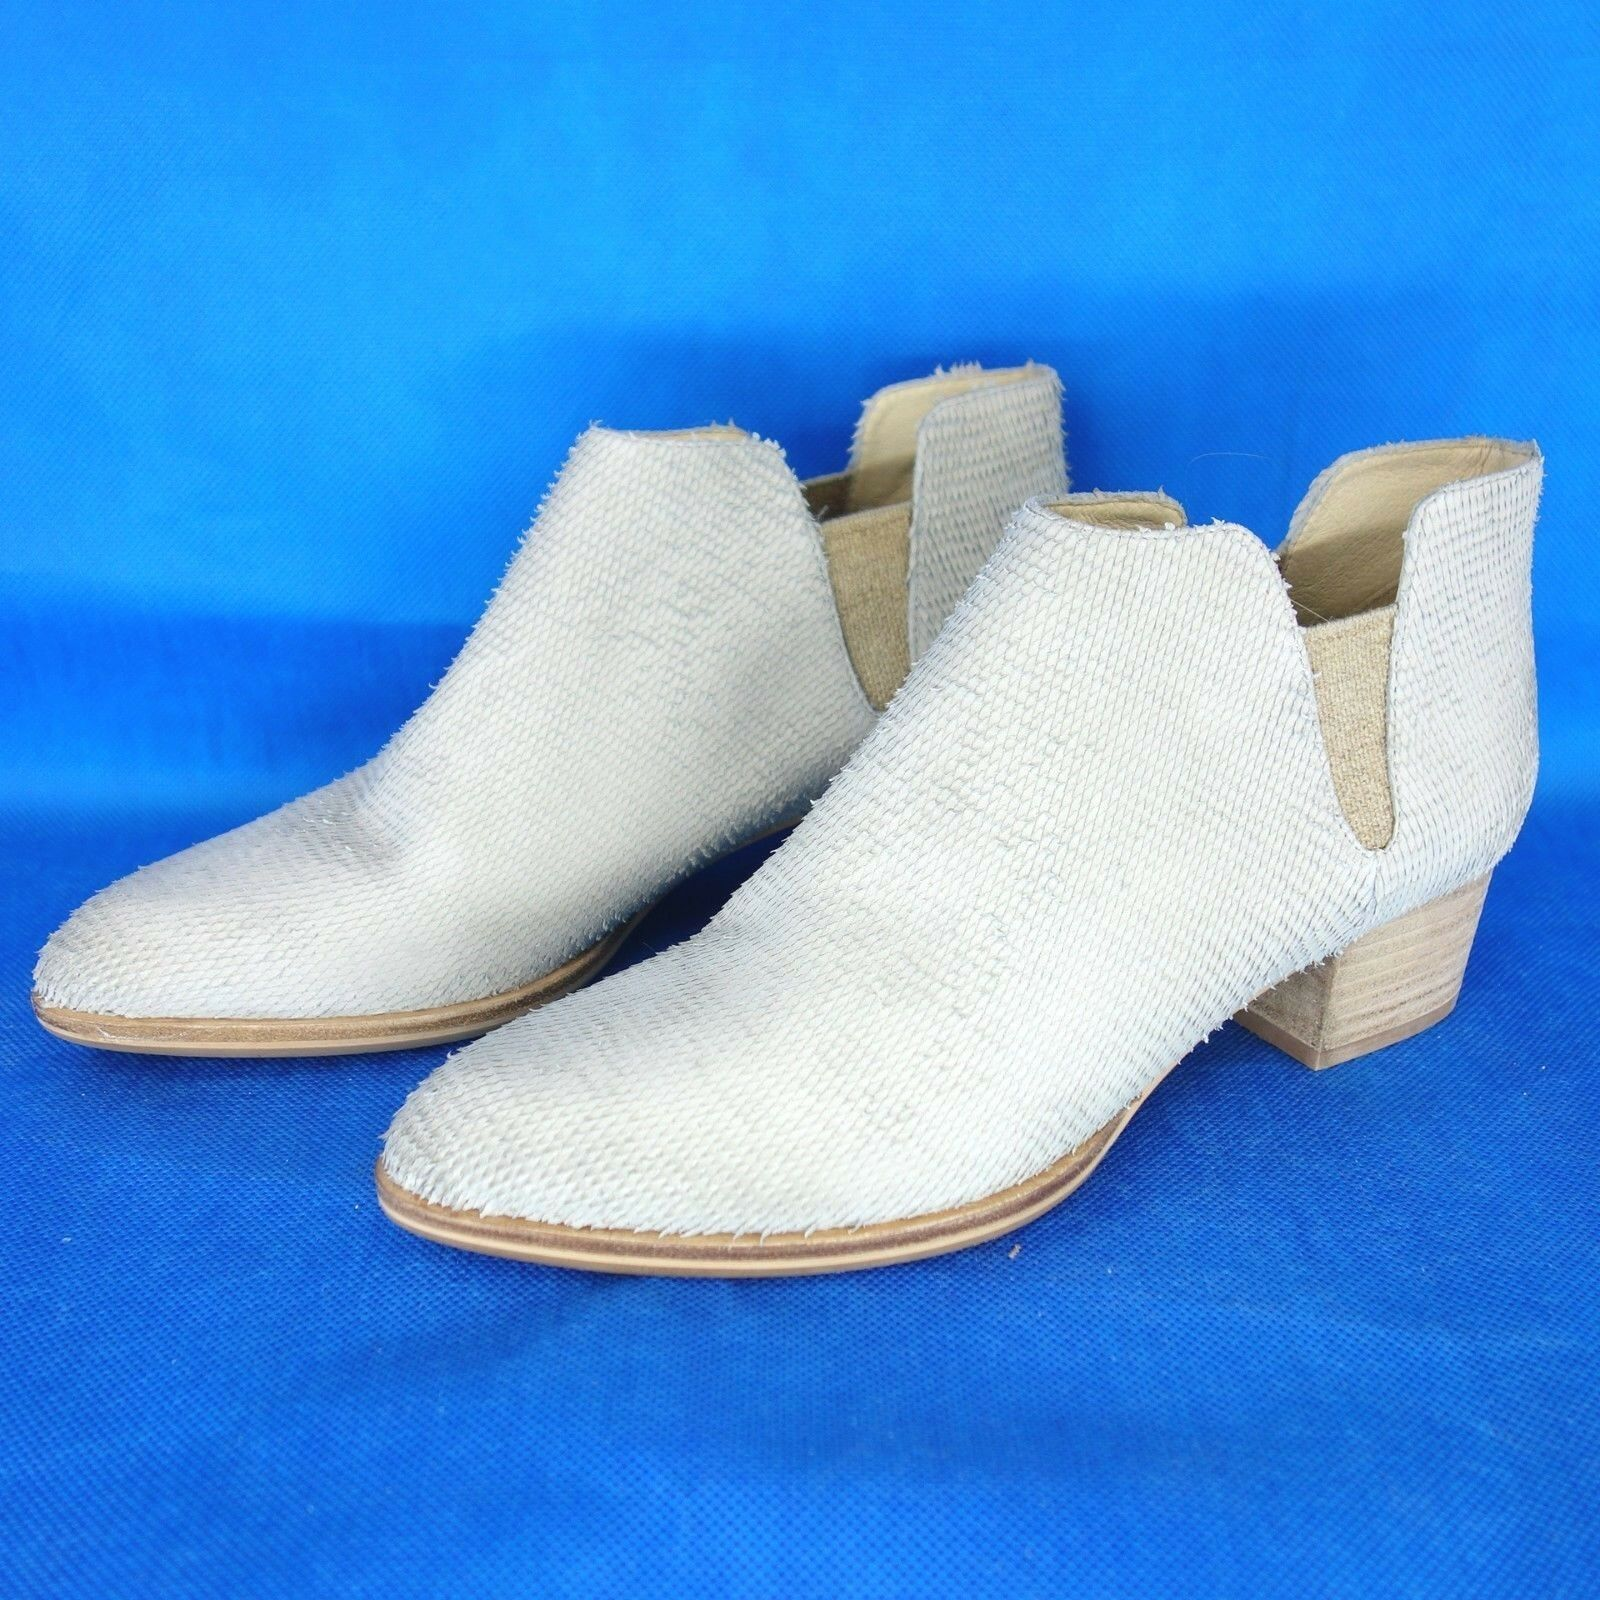 Bruno premiums Woman Ankle Boots gr-37gr-37 38 Brown Leather shoes NP 169 NEW